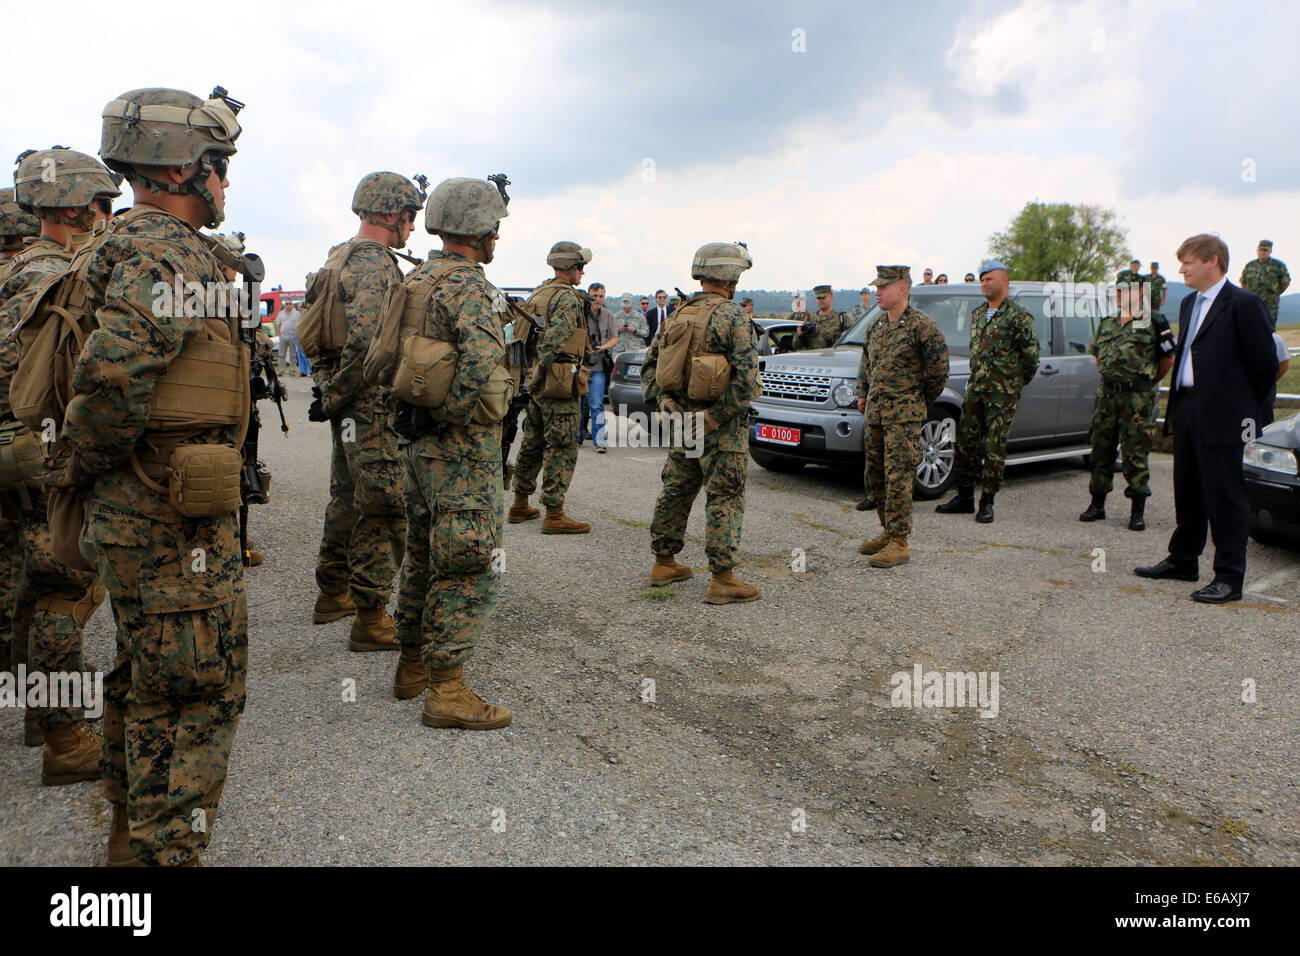 U.S. Marine Corps Lt. Col. Trevor Hall, center right, the commanding officer of the 3rd Battalion, 8th Marine Regiment, - Stock Image